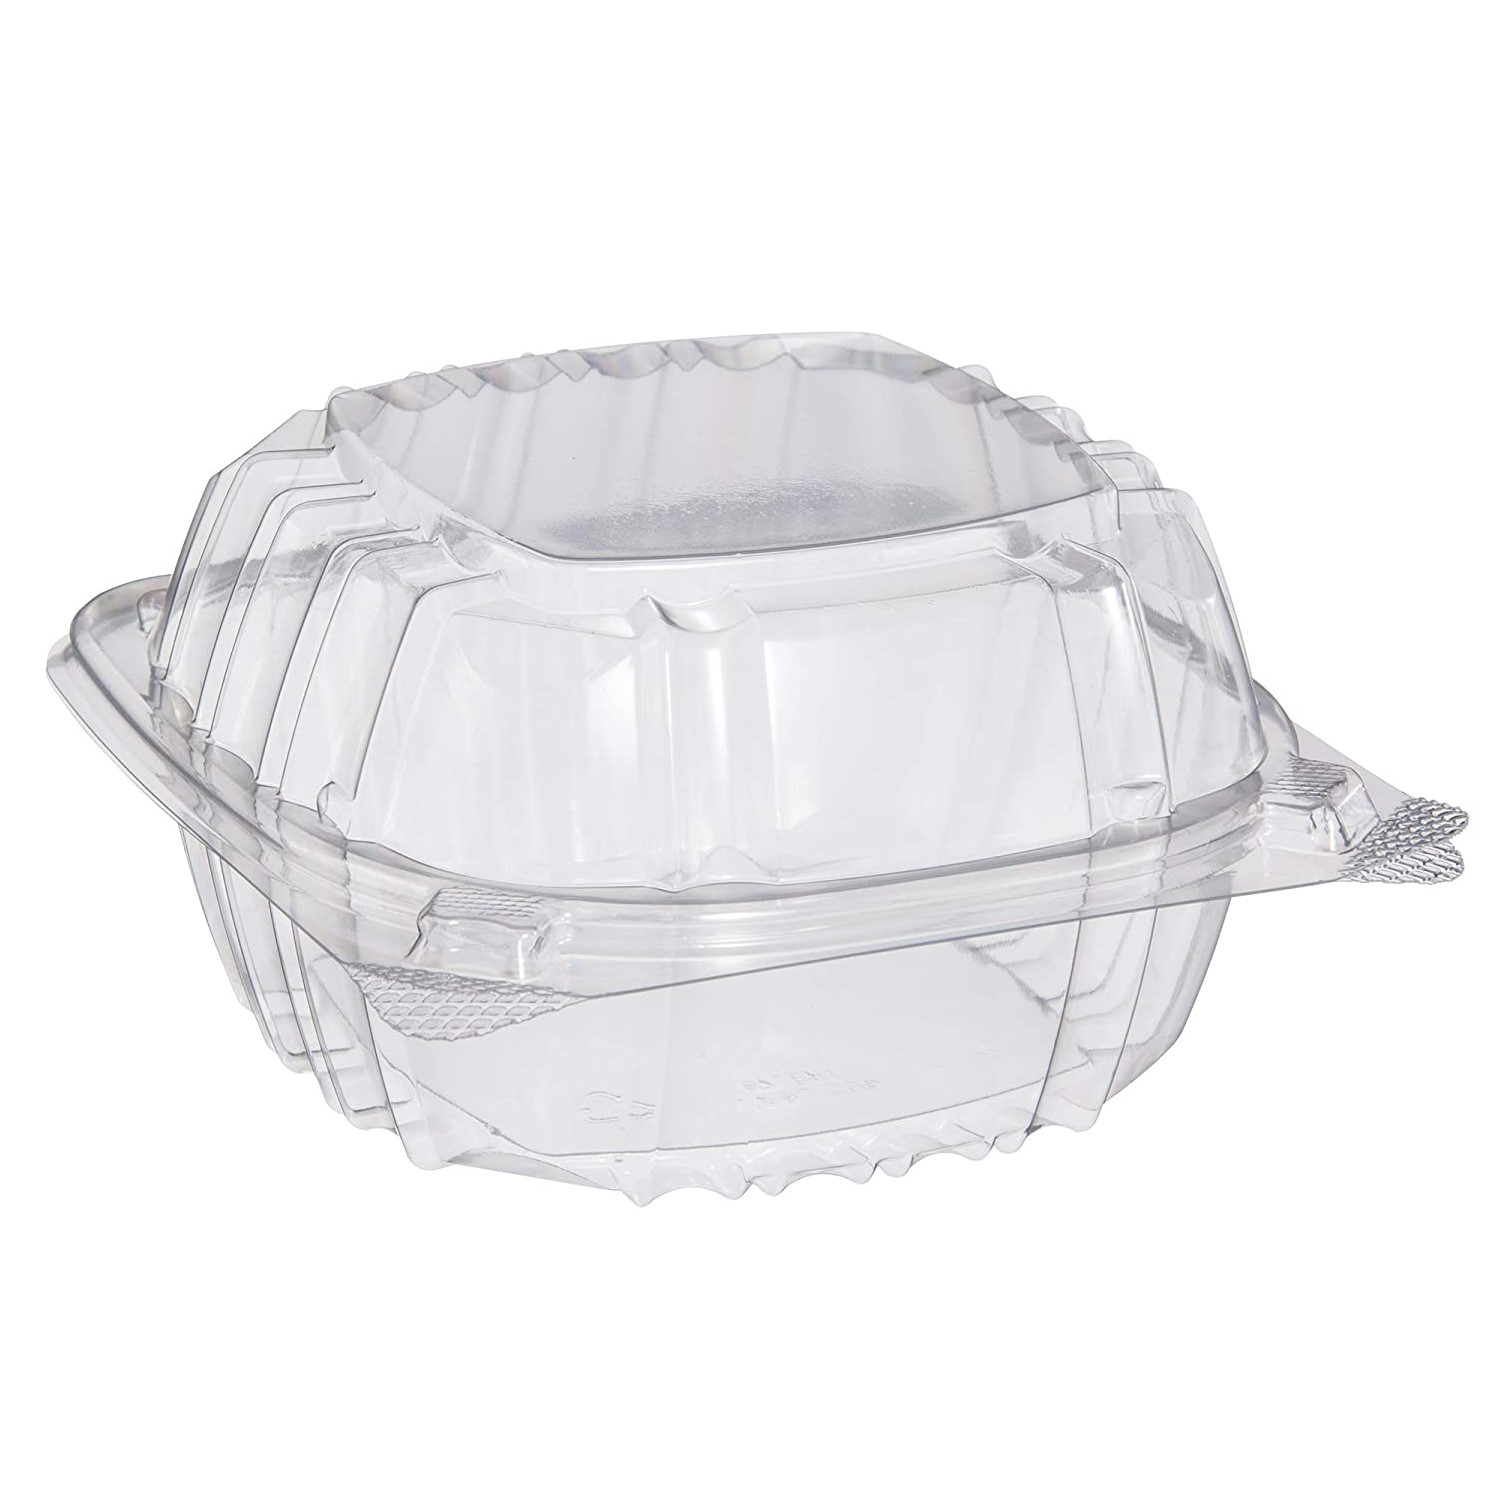 18-208456 - Dart C57PST1 6x6x3 Clear OPS Hinged Salad/Sandwich ClearSeal® Container 500 ct